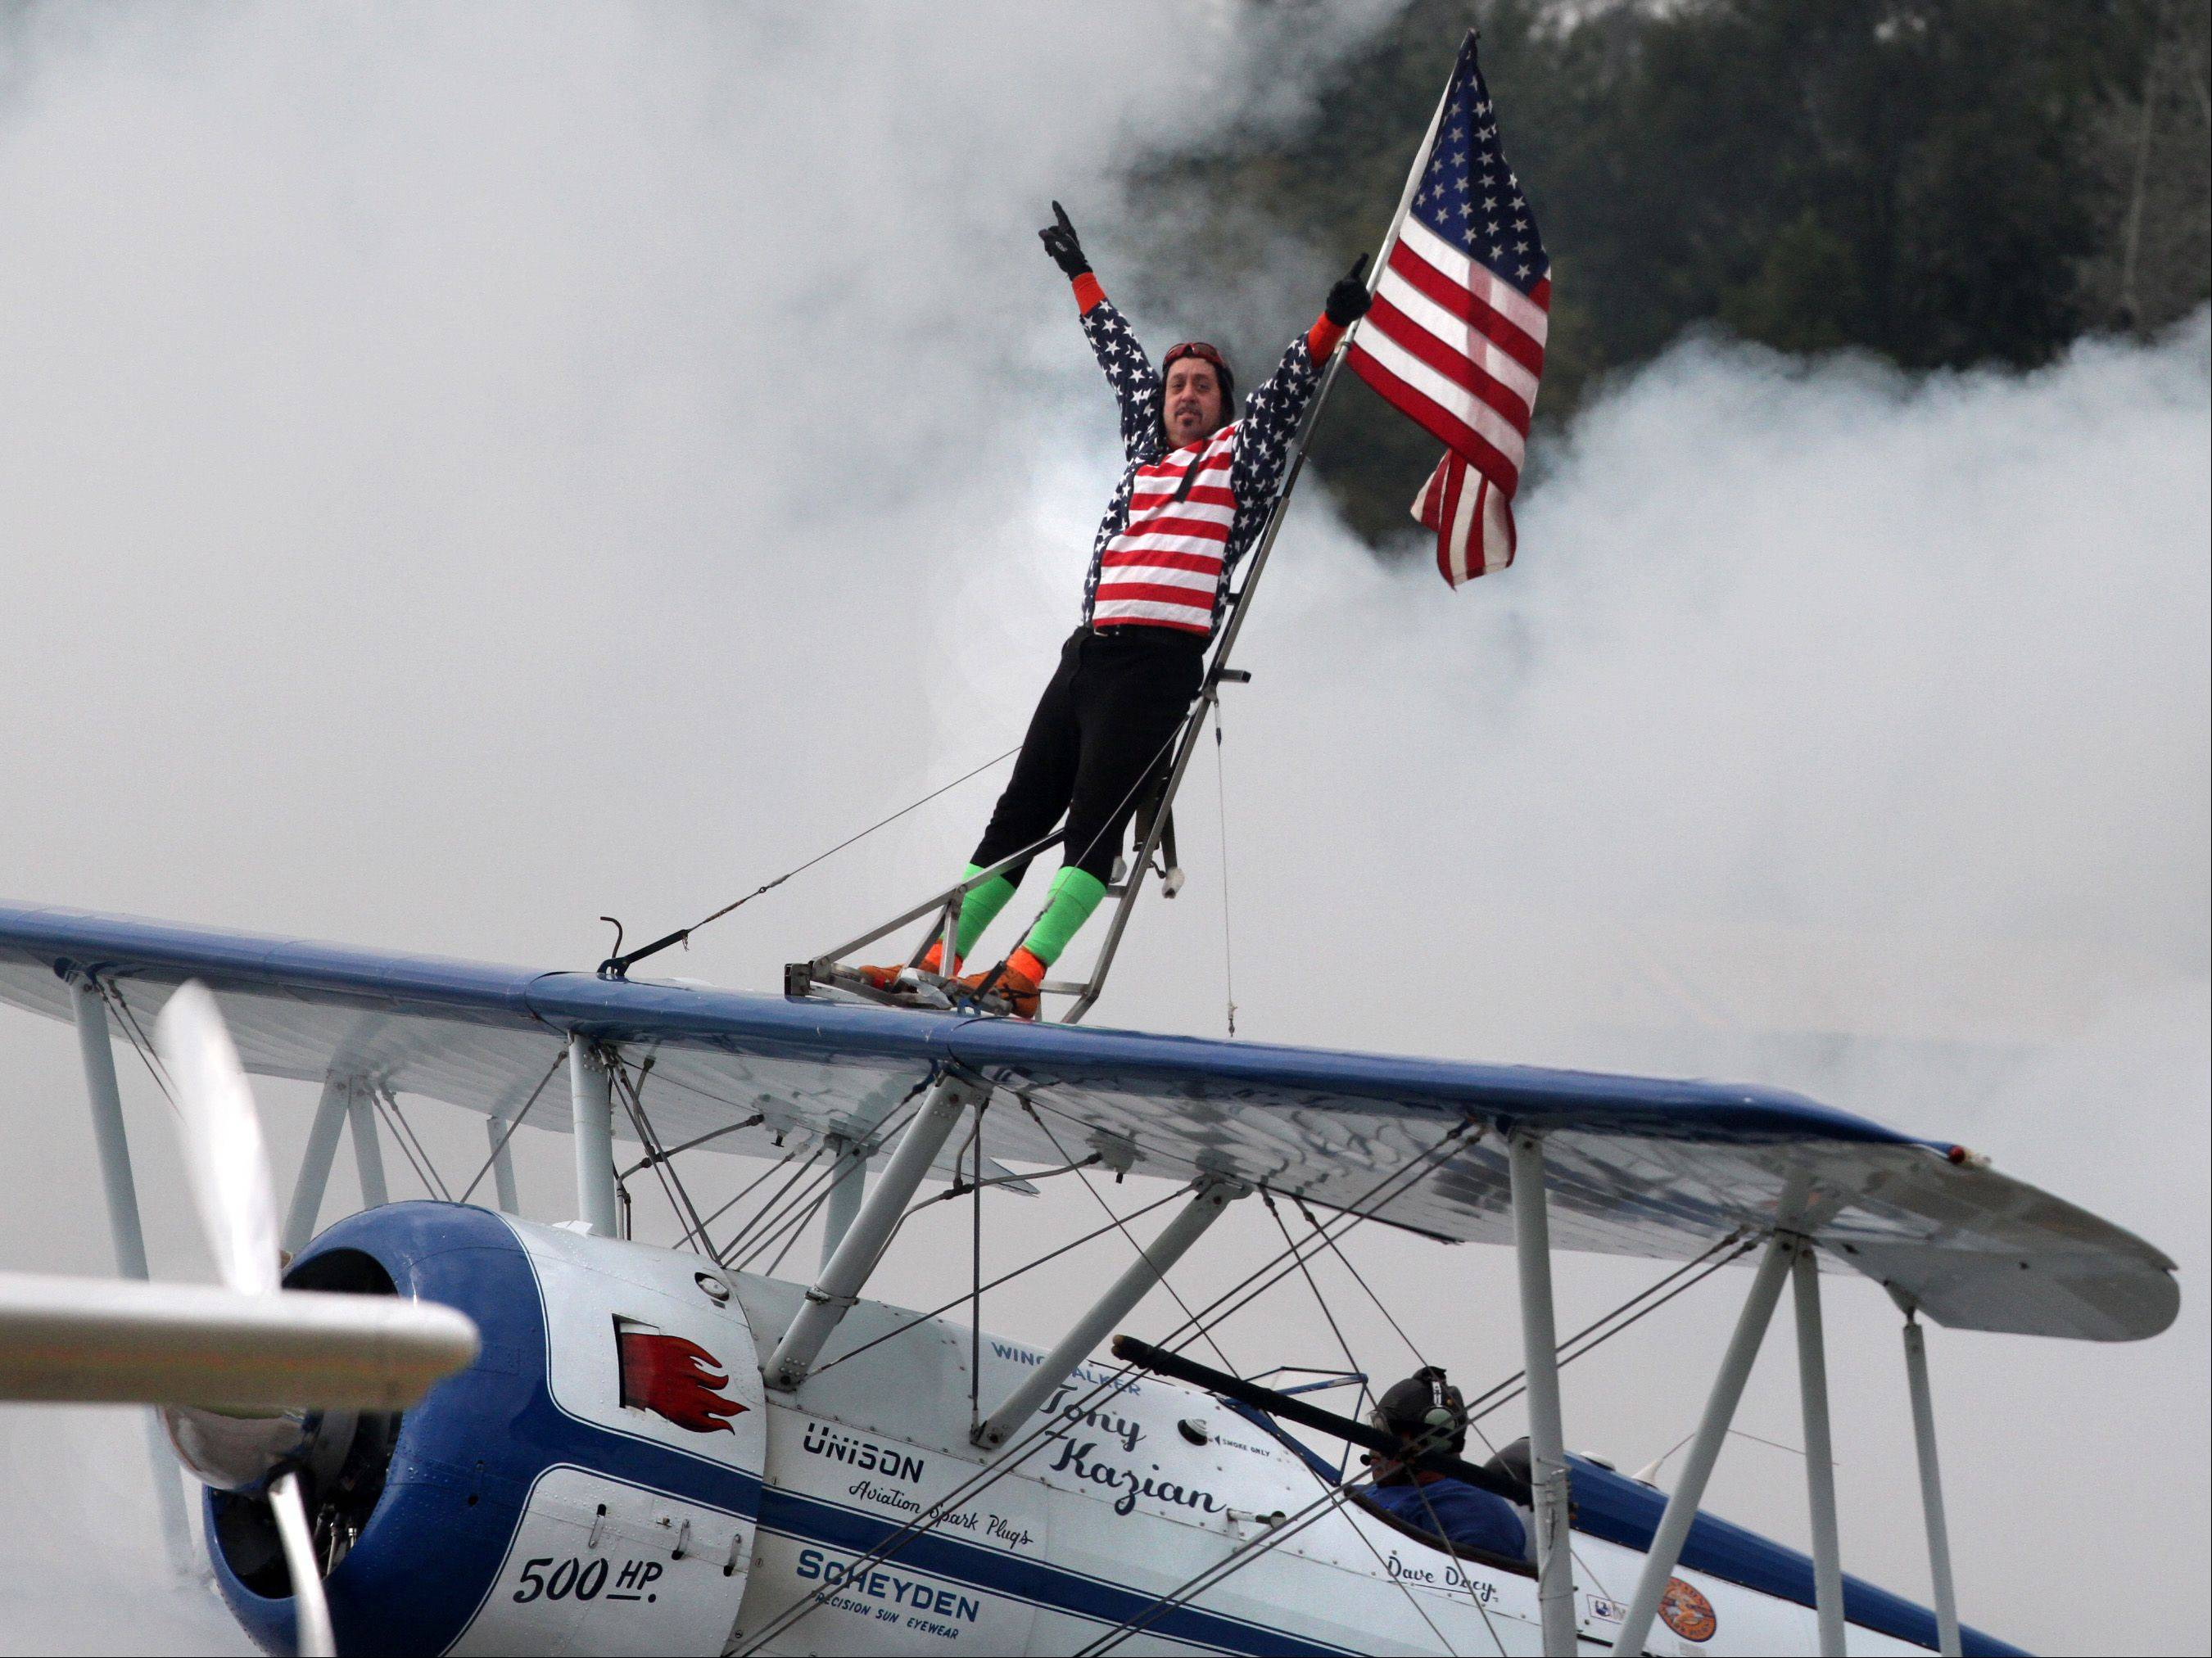 Wingwalker Tony Kazian waves to the crowd during last year's Waukegan Air Show.